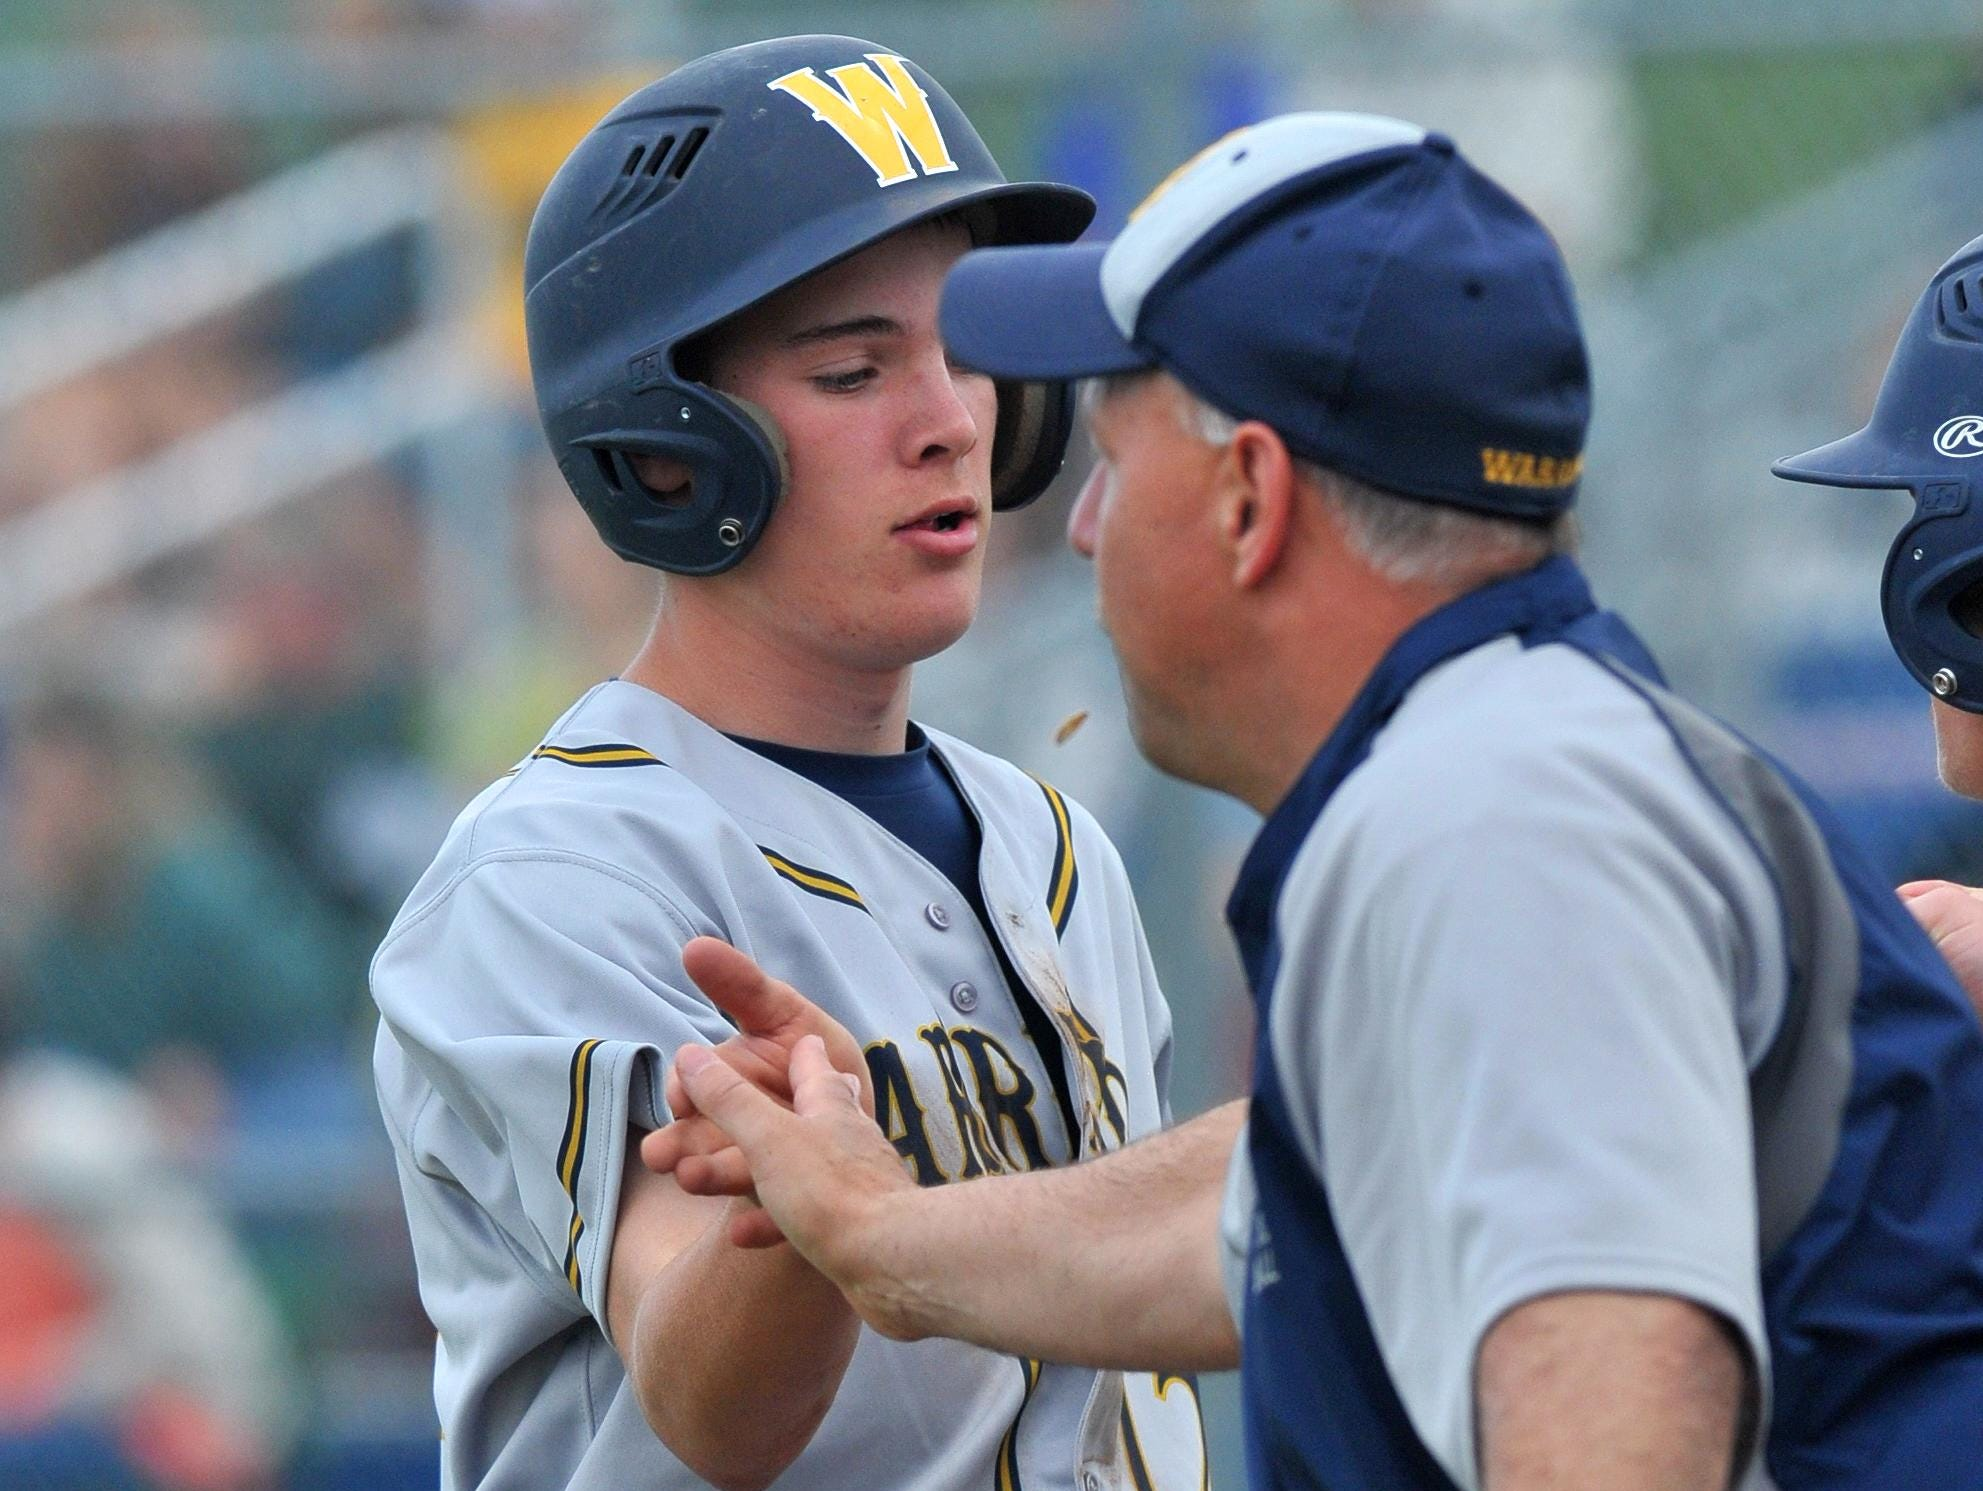 The Wausau West baseball team has a new coach. Ryan Whalen was hired last week after serving as a junior varsity coach for the past four years.